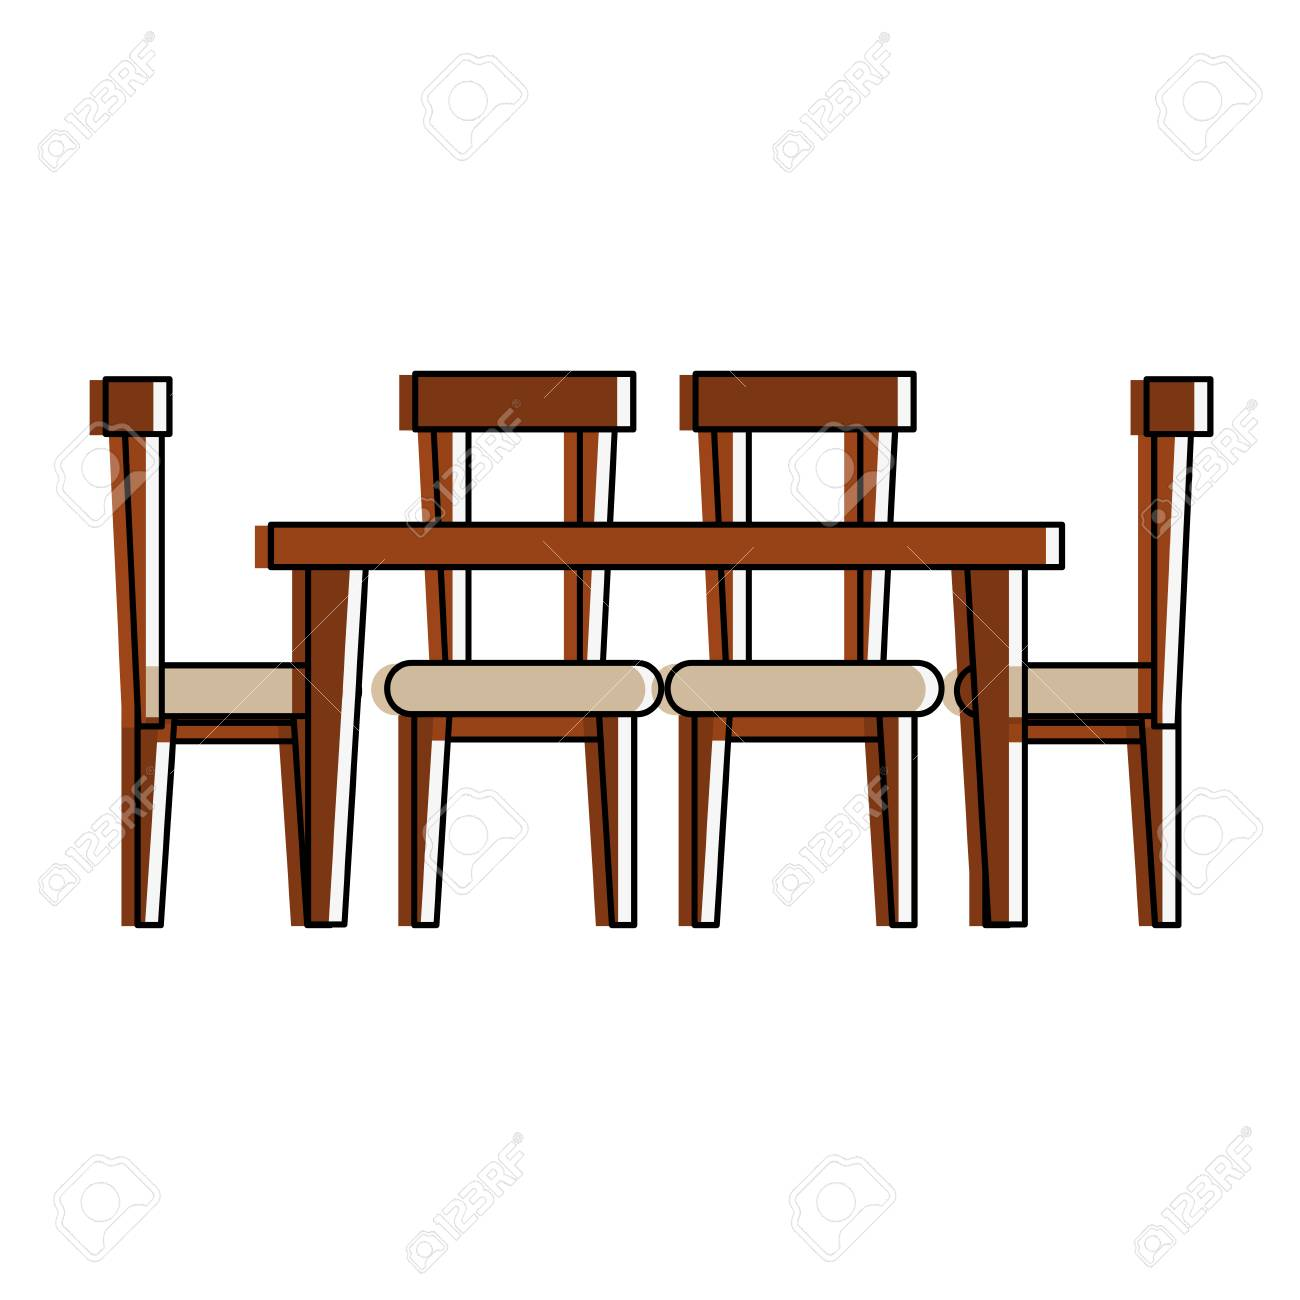 Dining Table With Chairs Frontview Furniture Icon Image Vector Illustration Design Stock